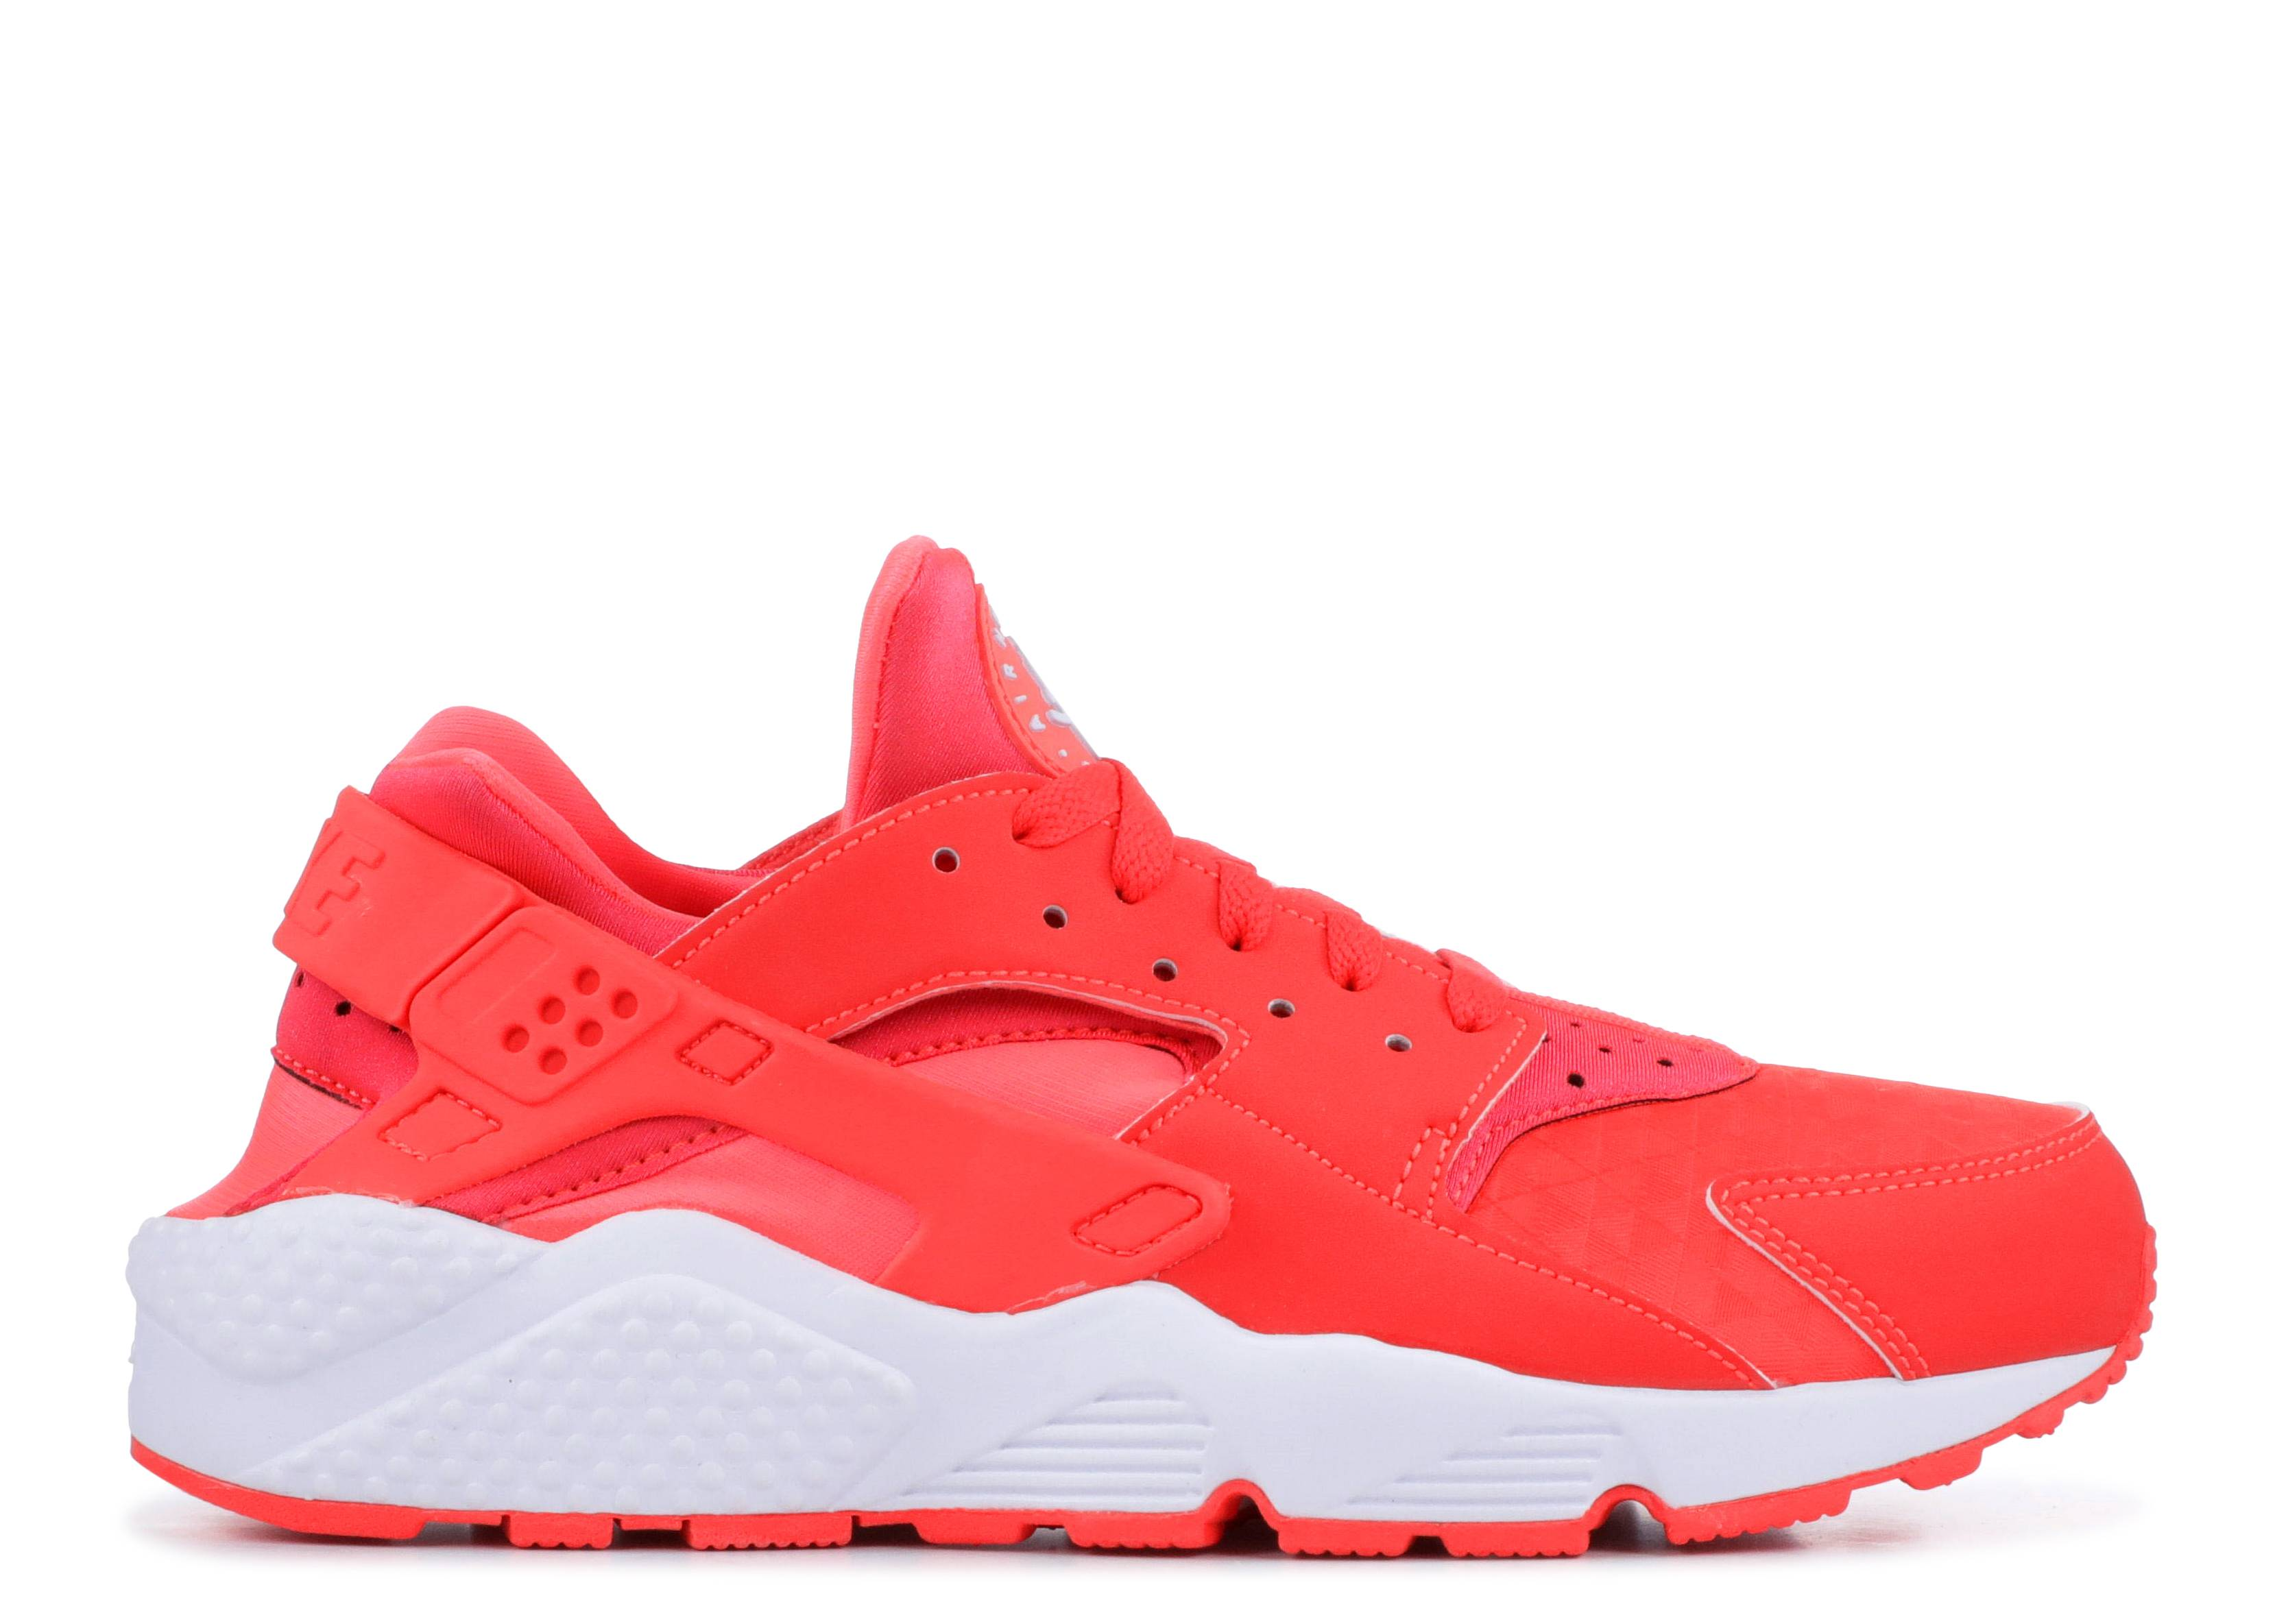 low priced 83b25 01f9f Nike Huaraches Shoes for Women & Men | Flight Club